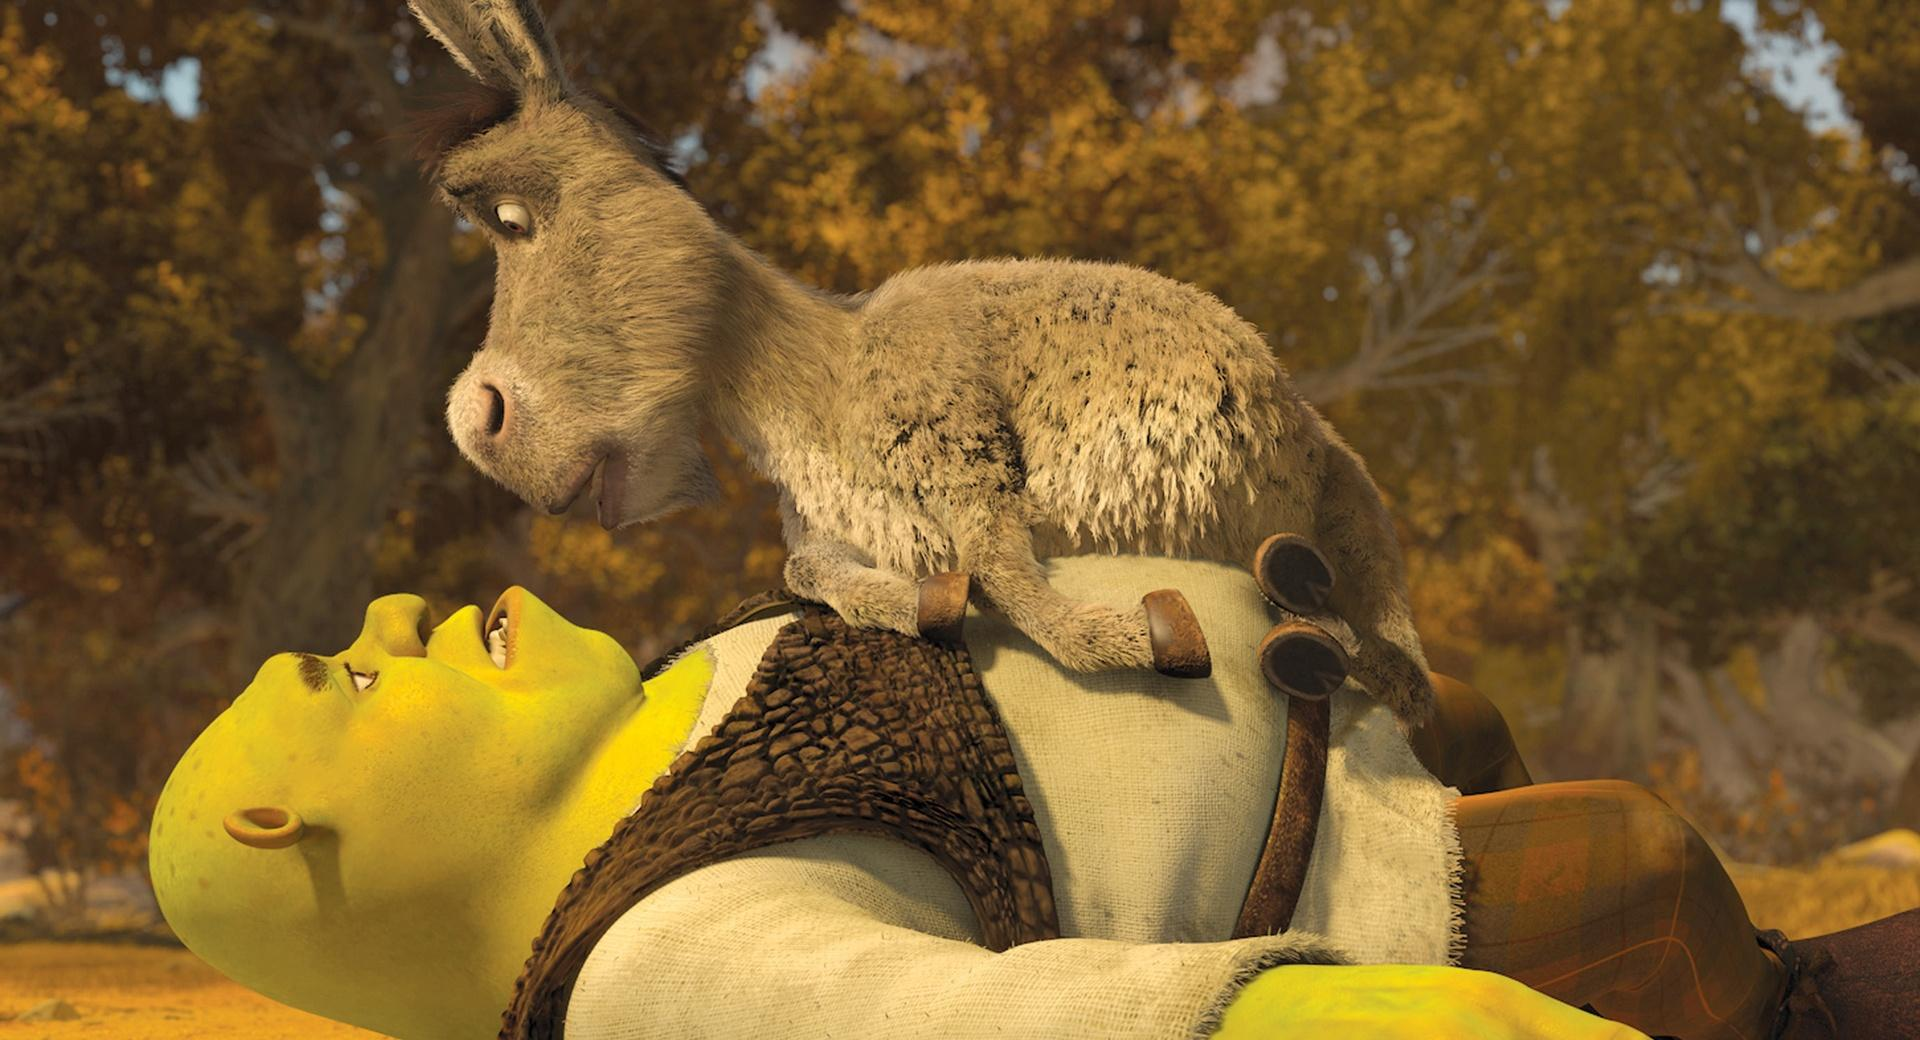 Shrek and Donkey wallpapers HD quality